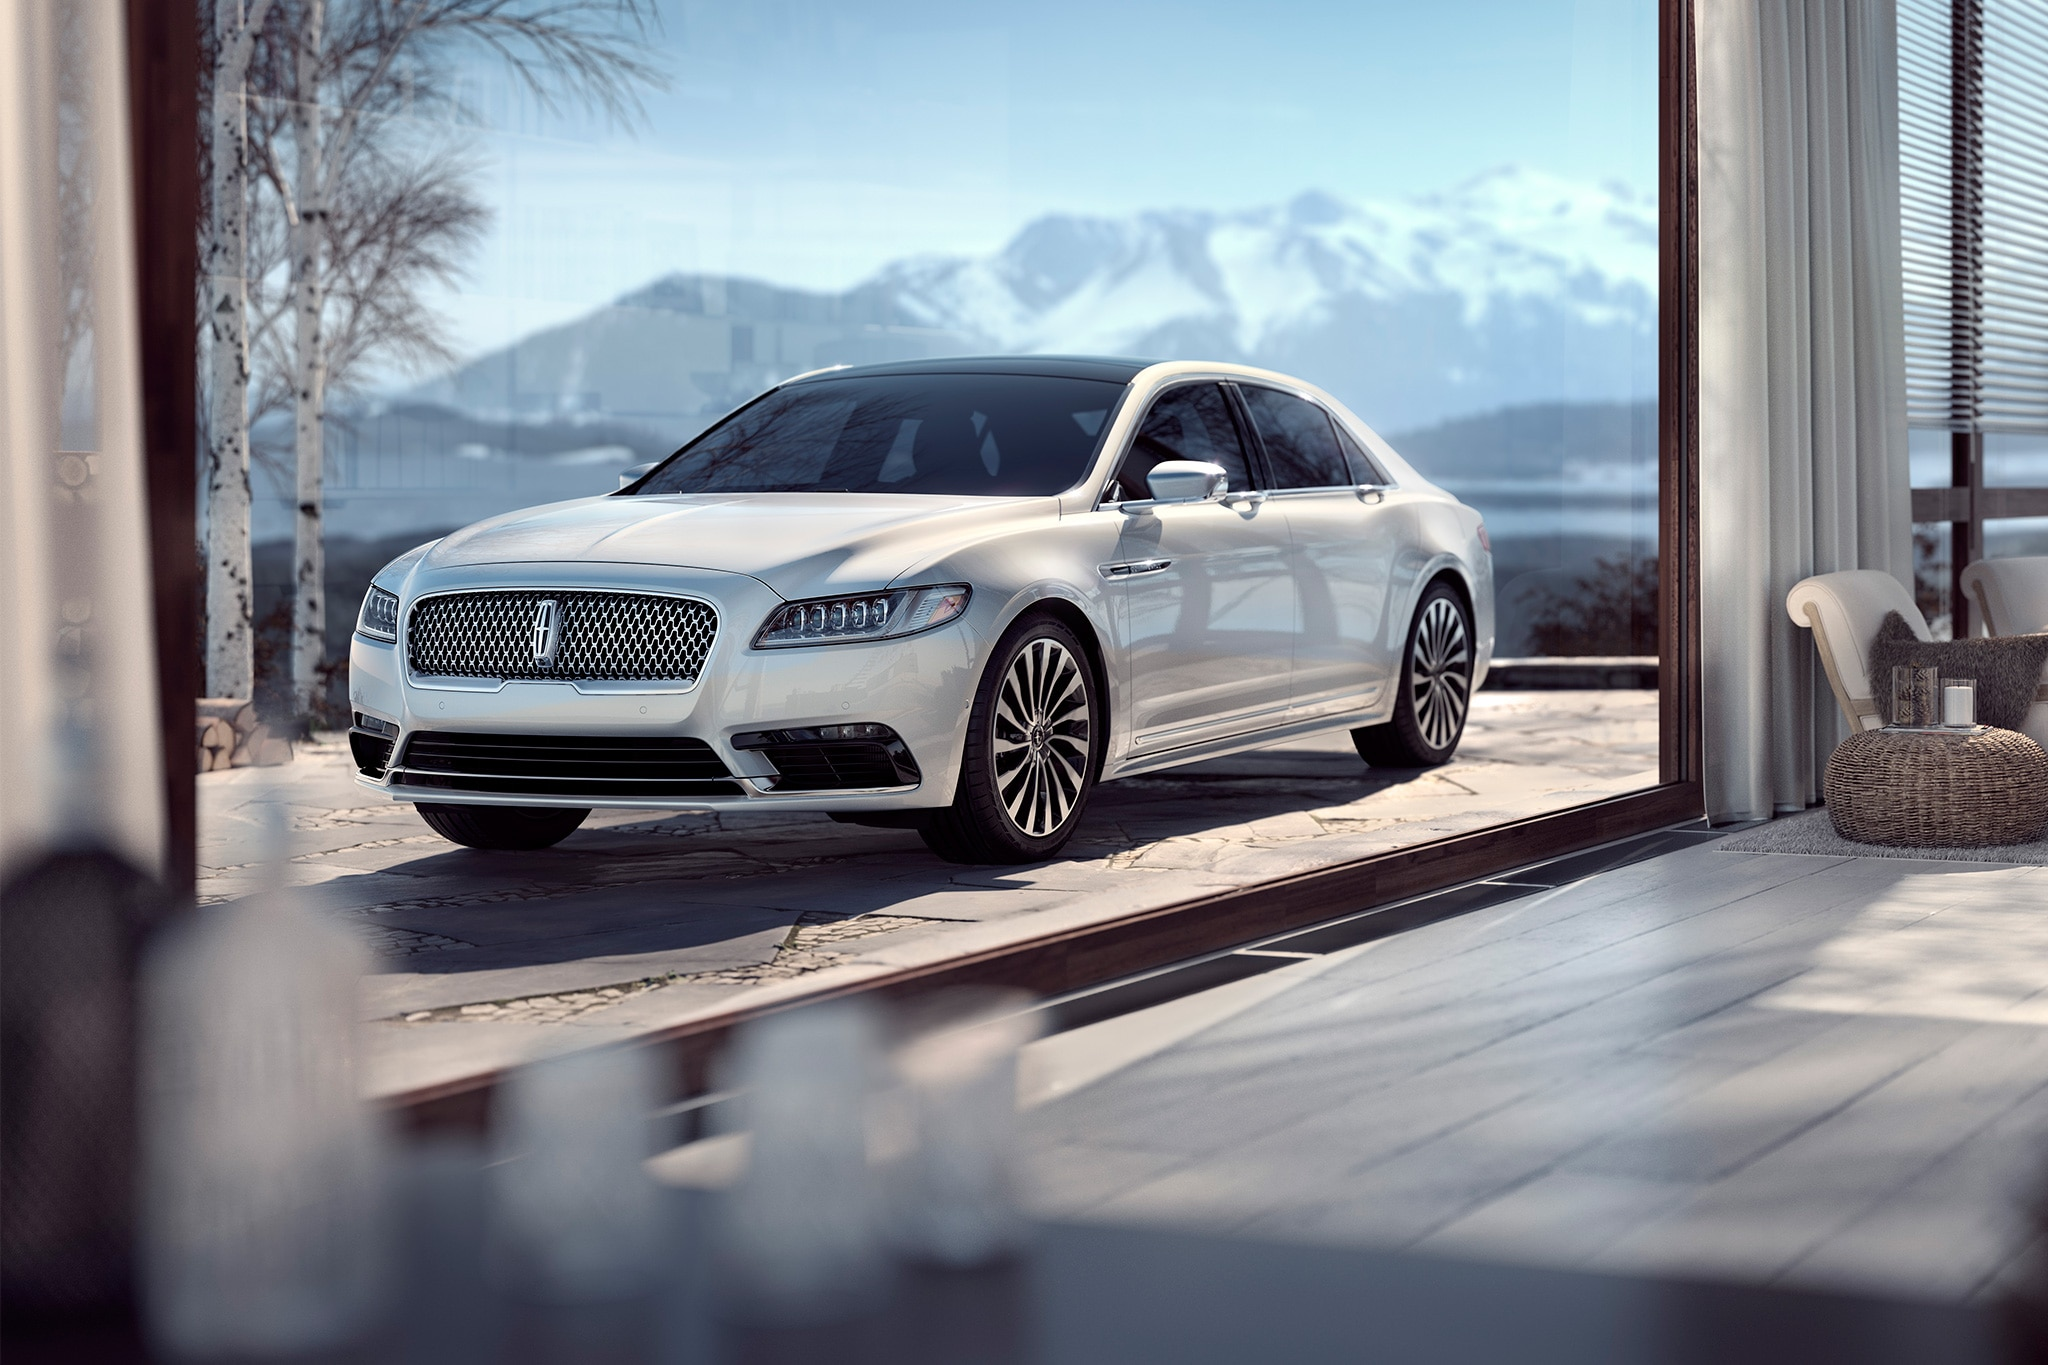 2017 Lincoln Continental Front Three Quarter 03